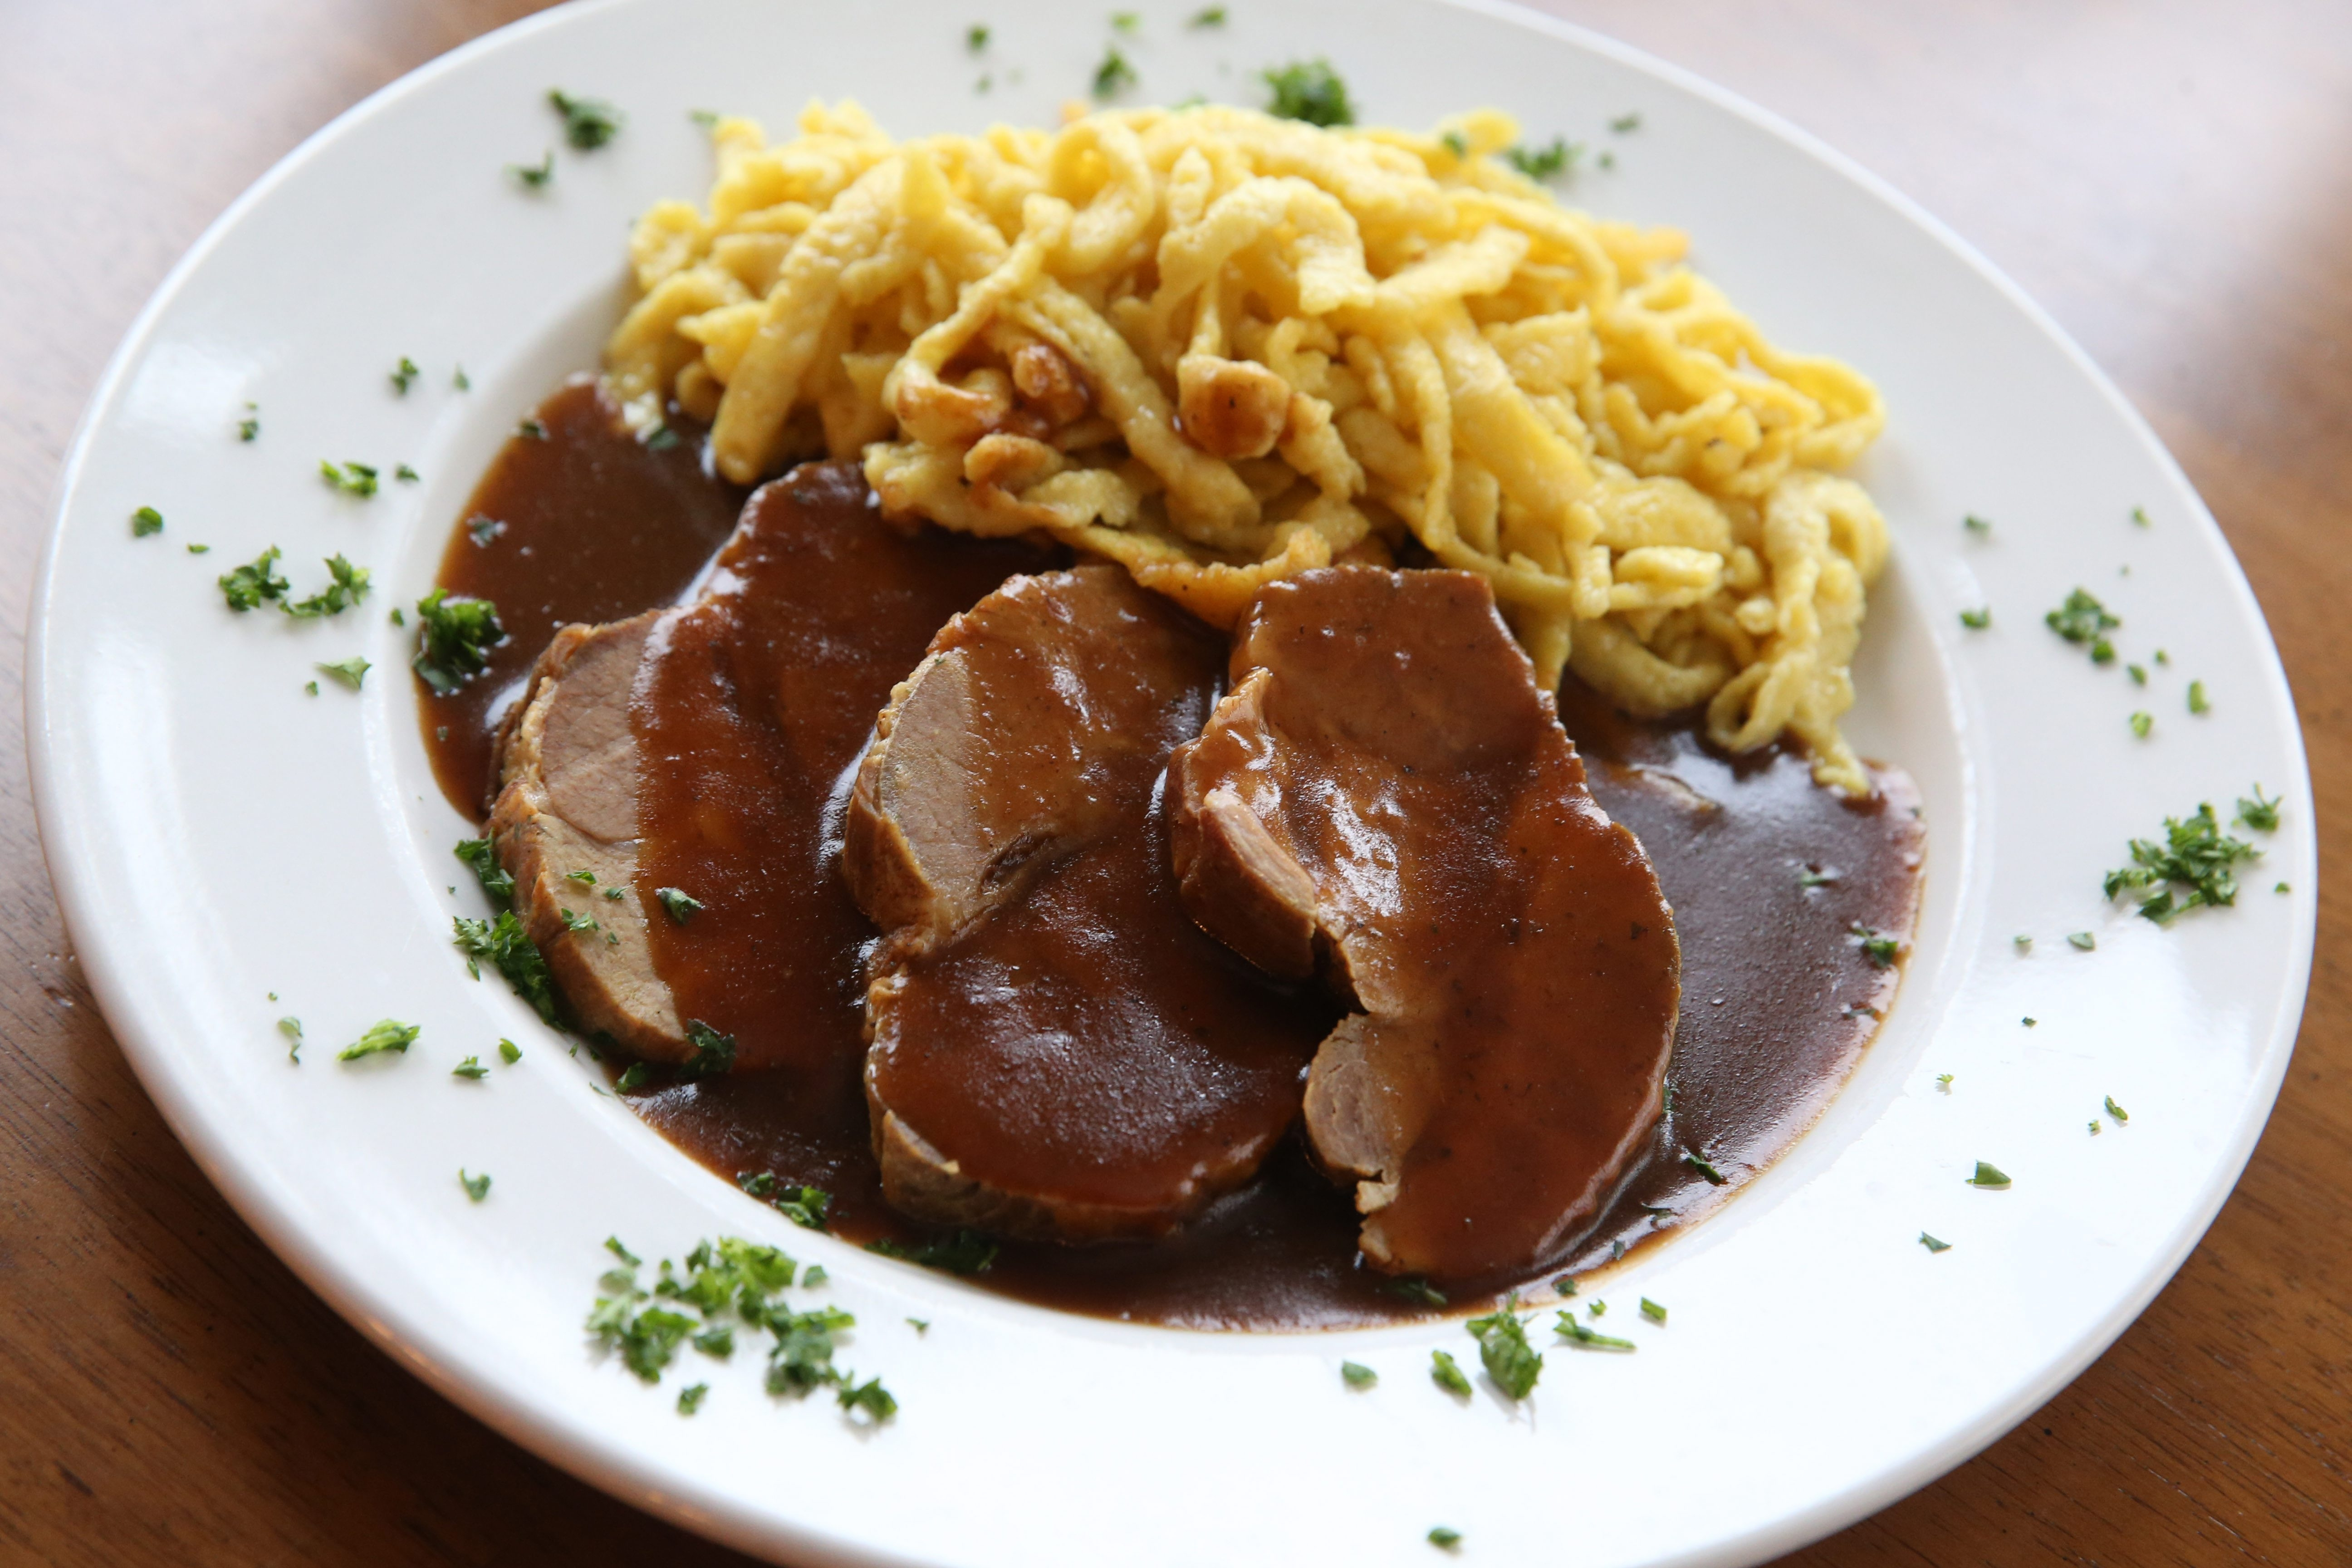 Pork comes in a dark beer gravy and is served with homemade spaetzle.